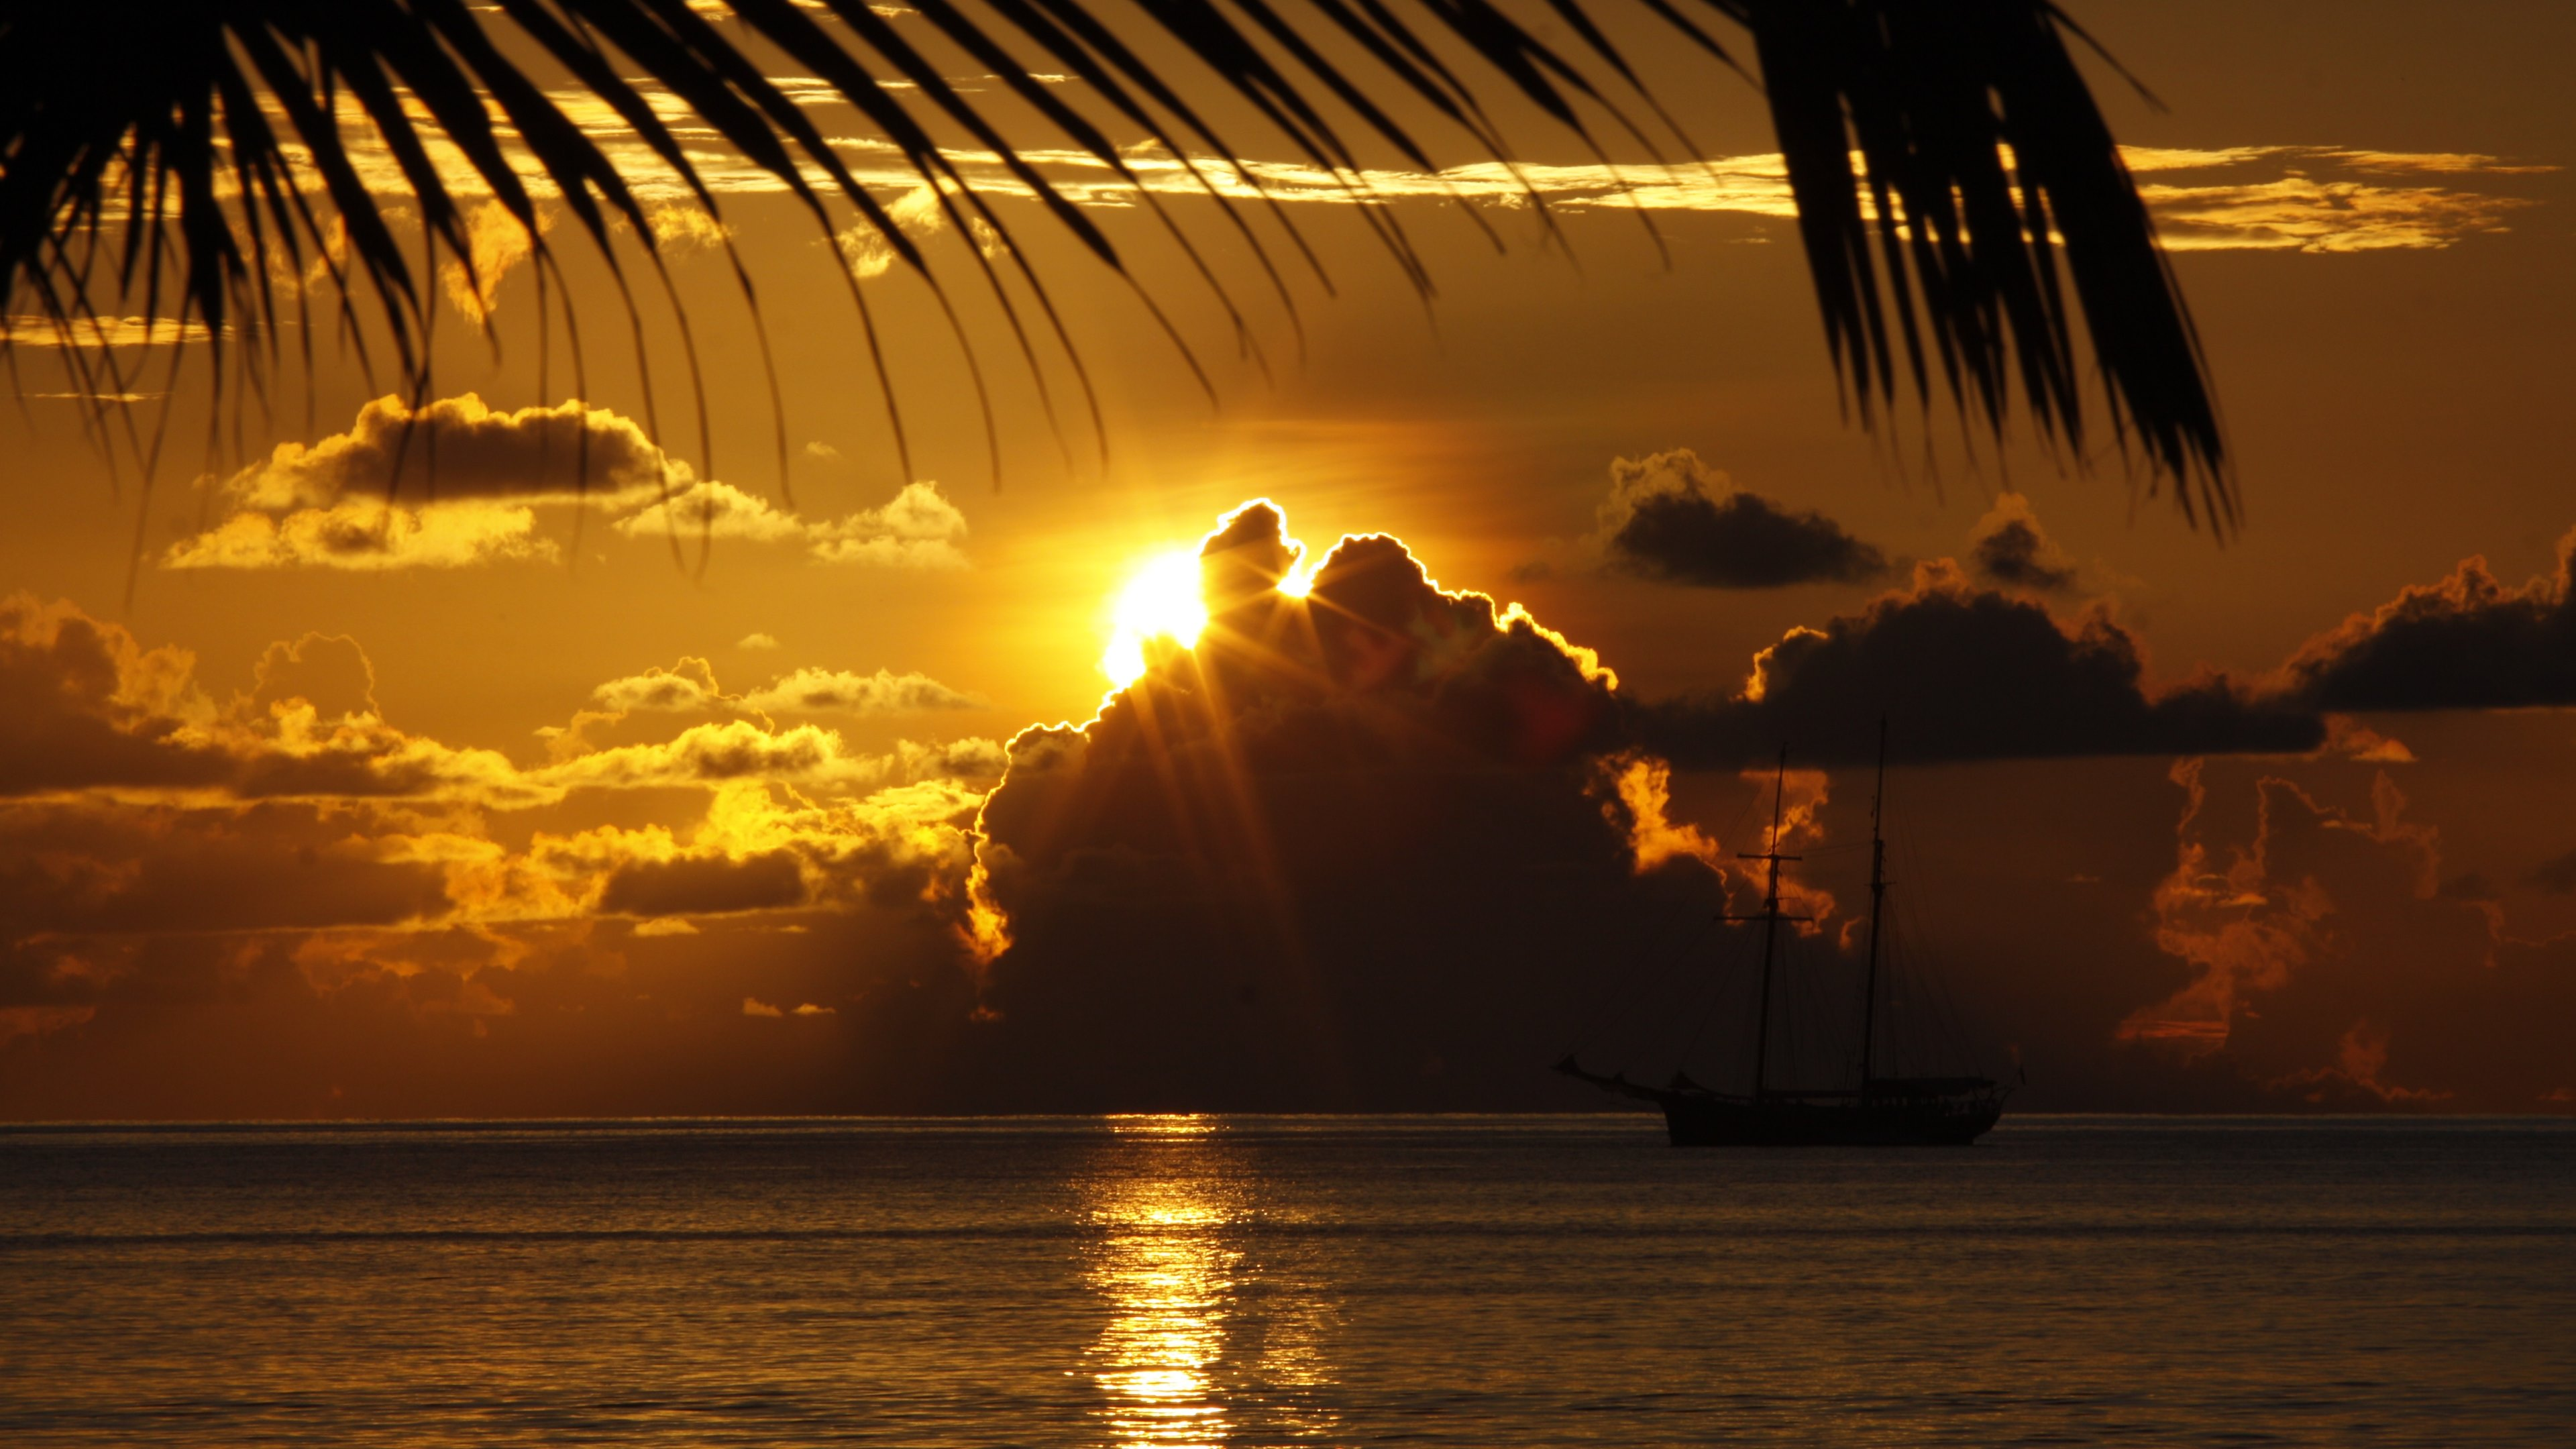 The Dream Travel, paradise, nature, beach, palm trees, sunset, sunset, sailboat, boat, sea